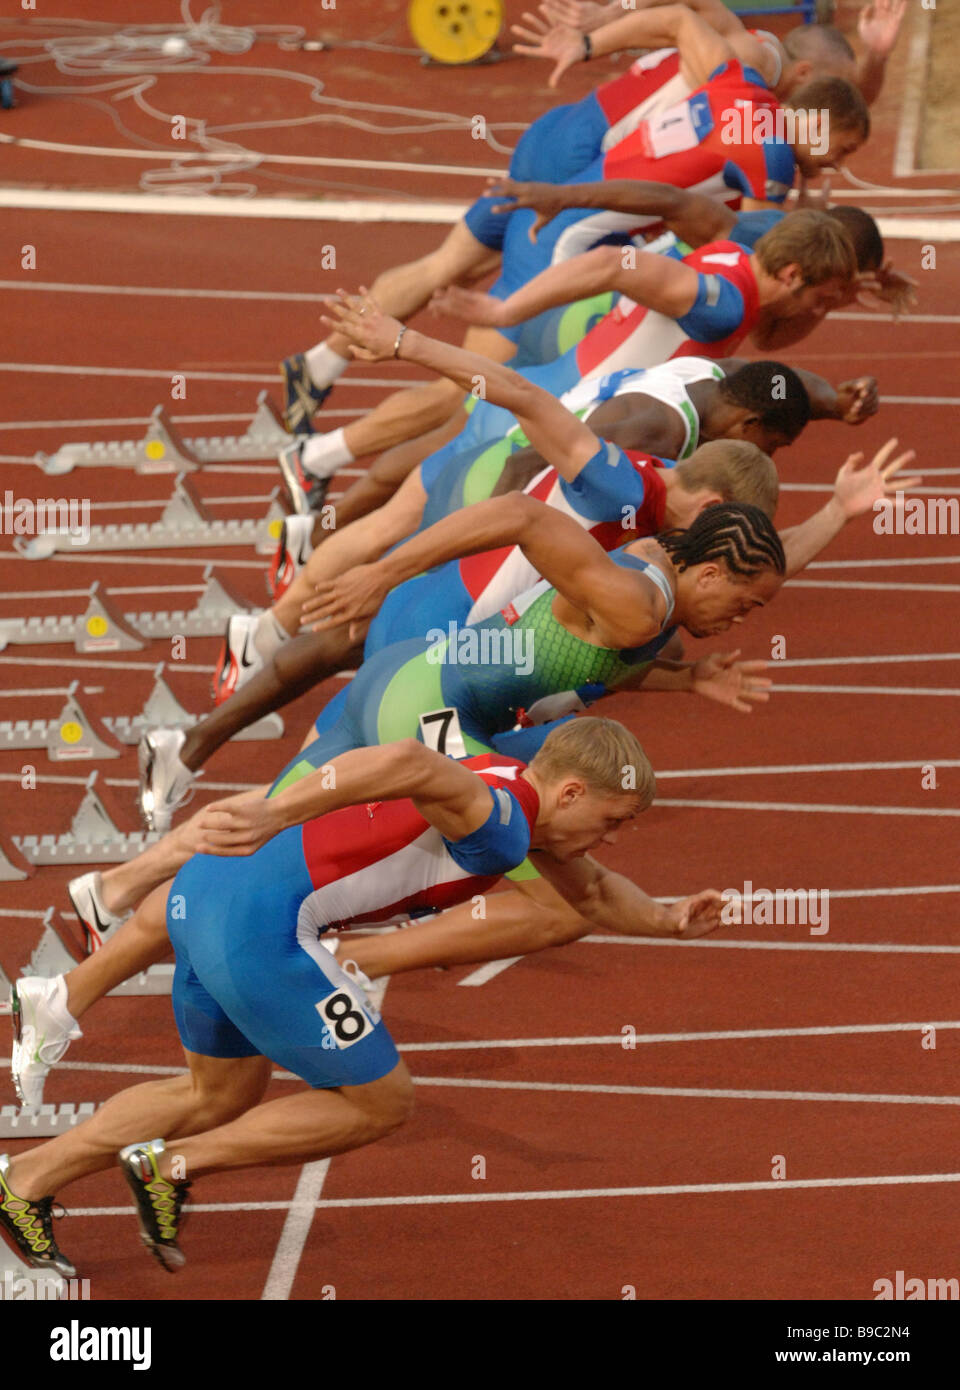 Start of the men s 100 meter dash at the Russia U S track and field tournament at the Luzhniki Stadium in Moscow - Stock Image